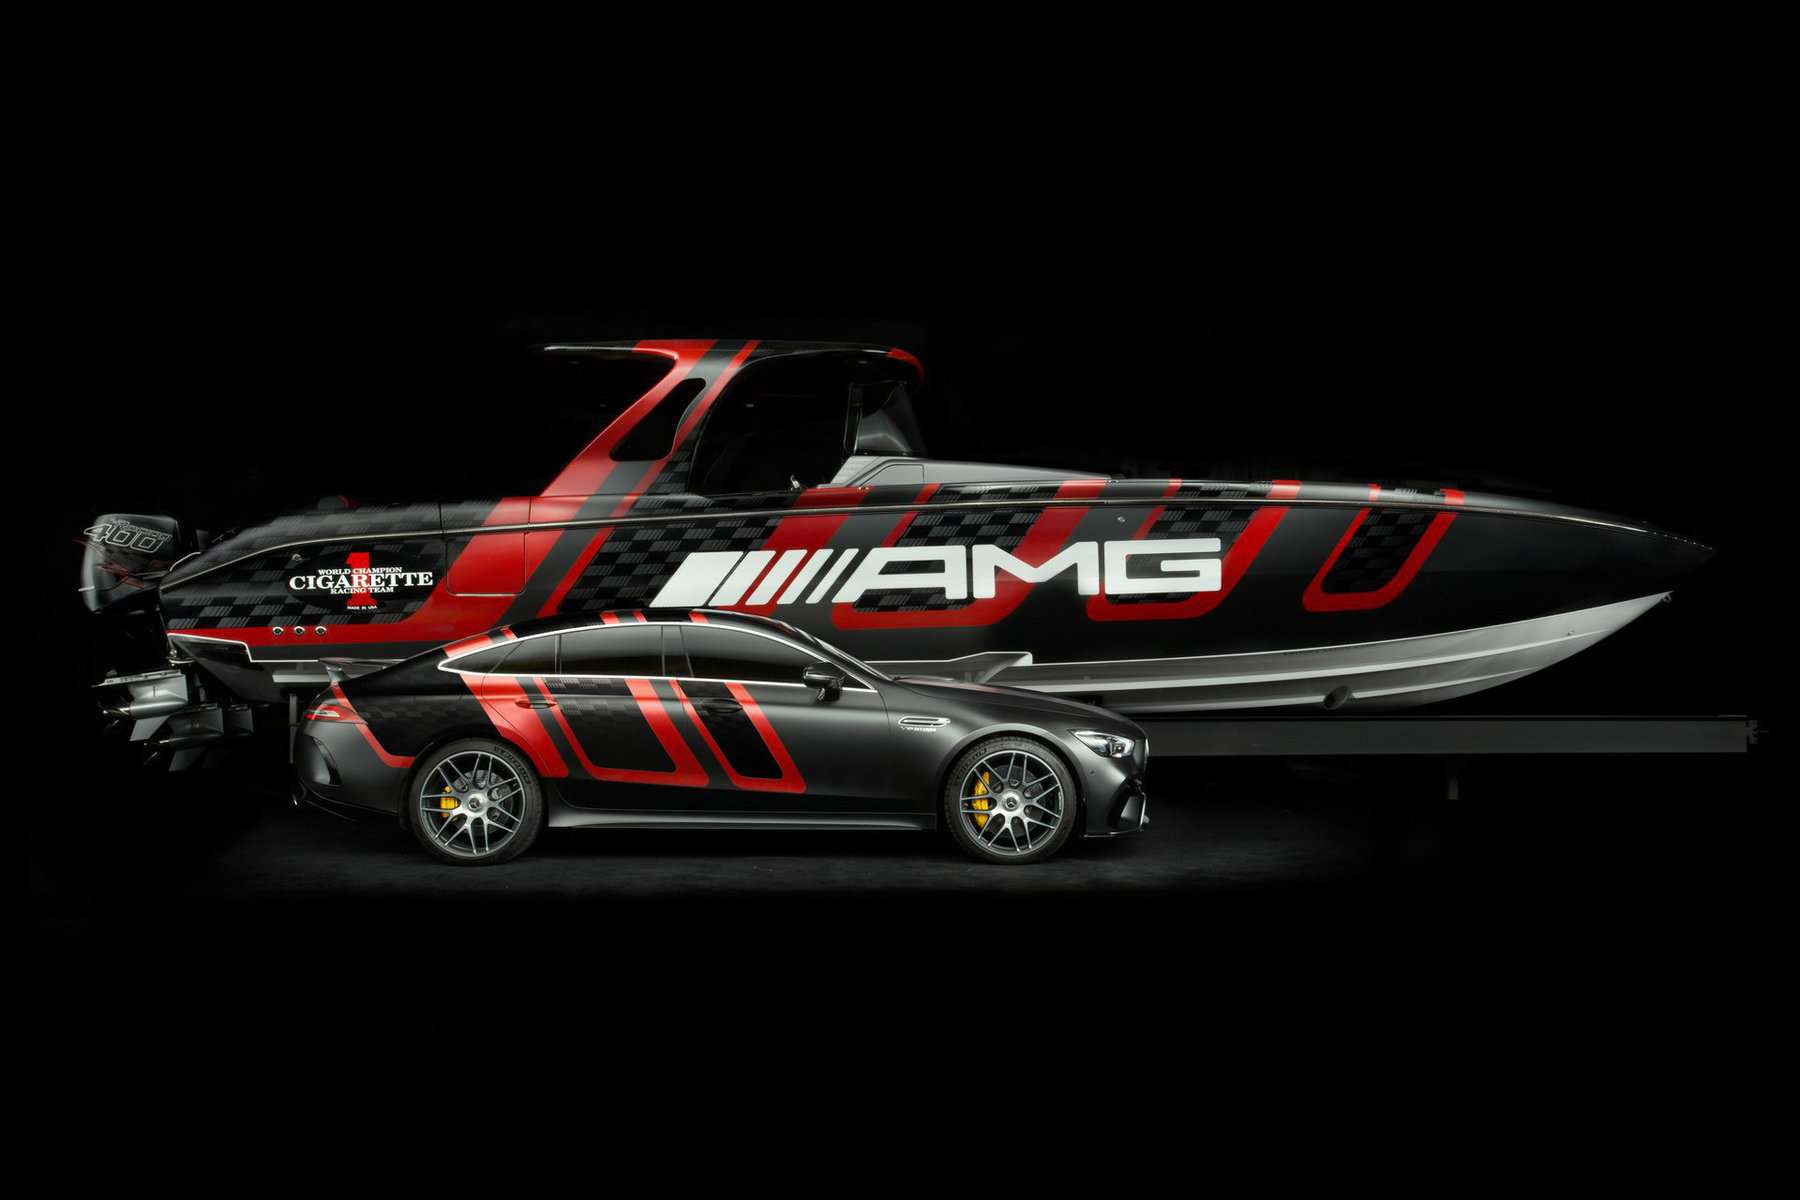 amg-carbon-edition-speedboat-from-mercedes-amg-and-cigarette-racing-4